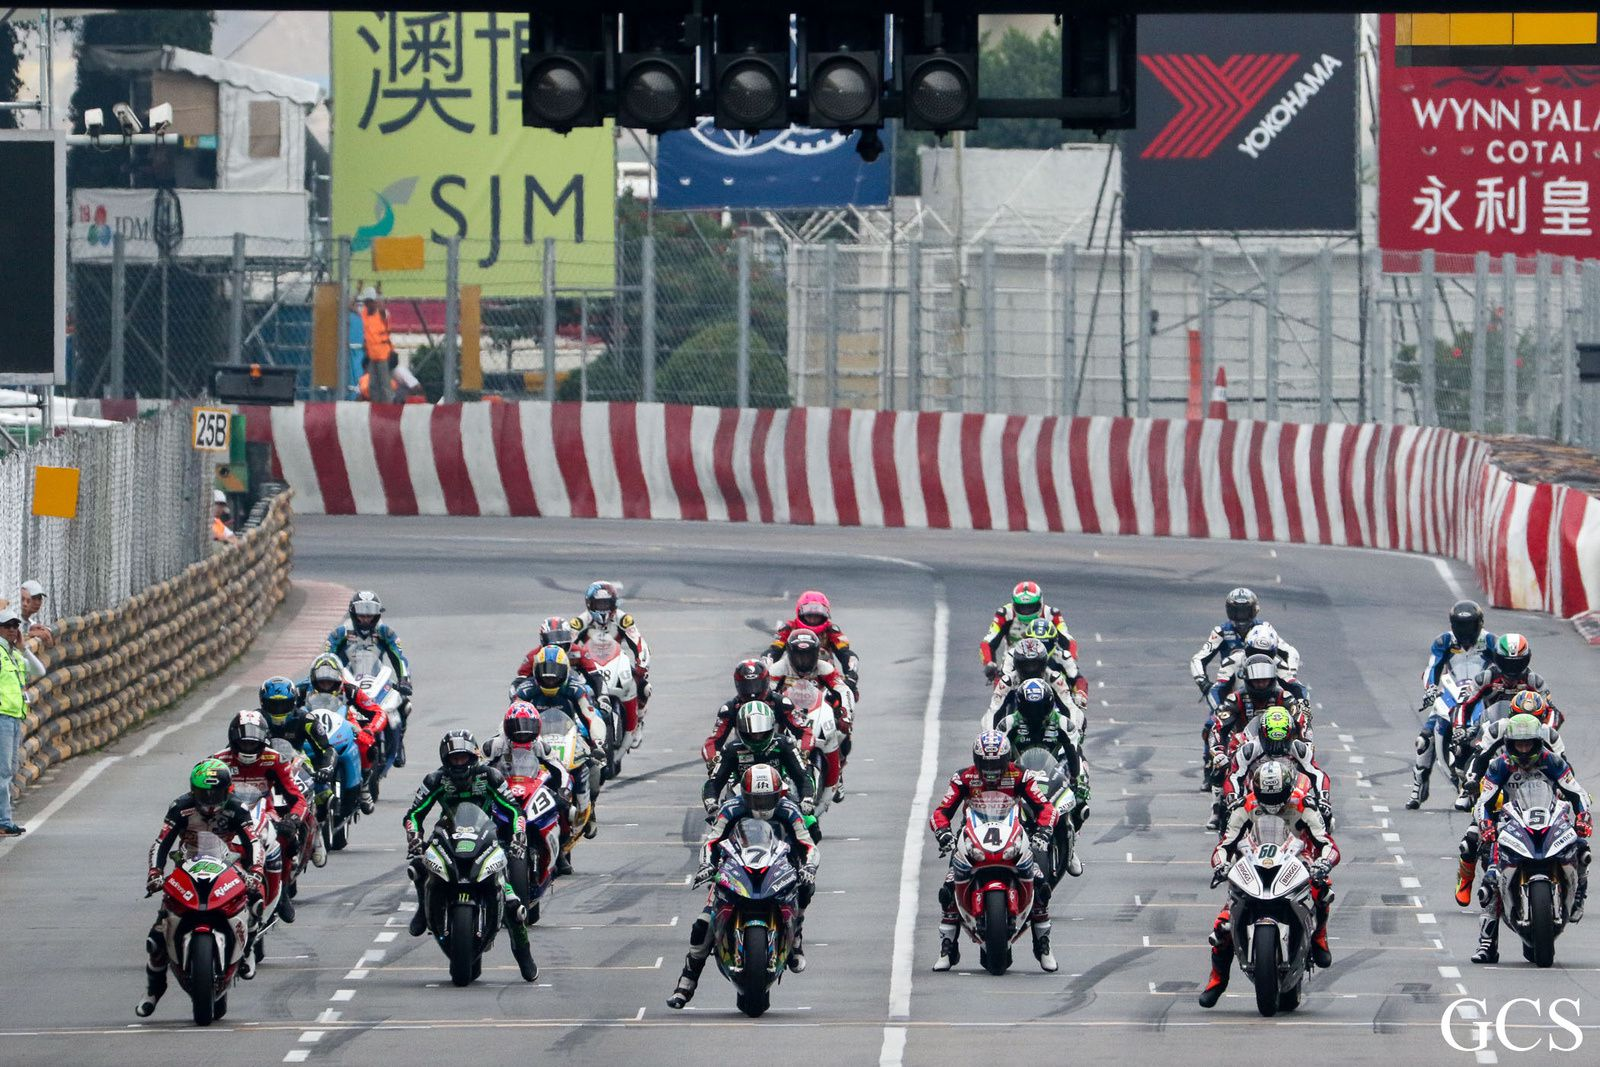 Macau 2015, les photos de la course.